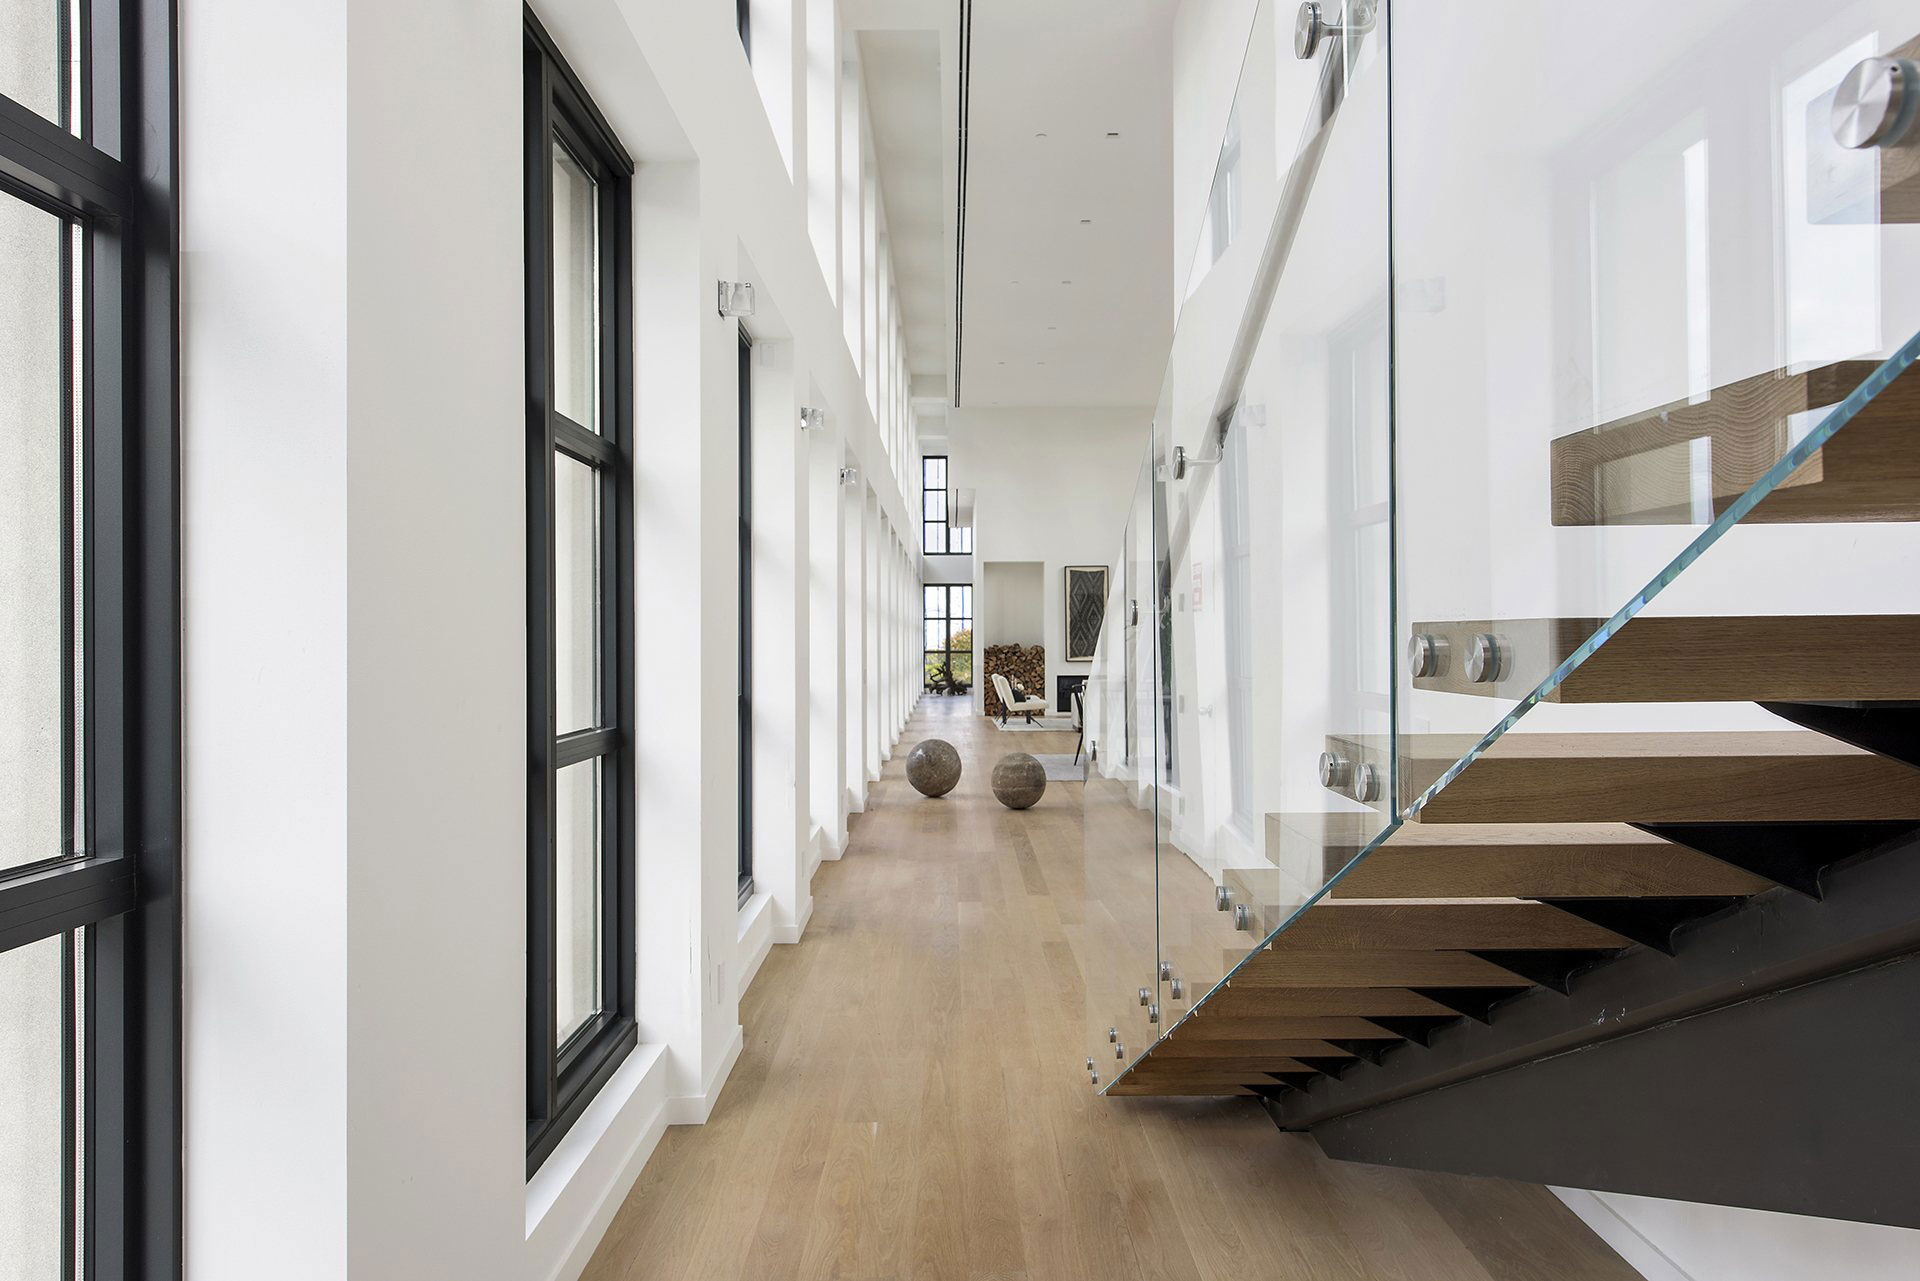 Long naroow corridor with high ceiling